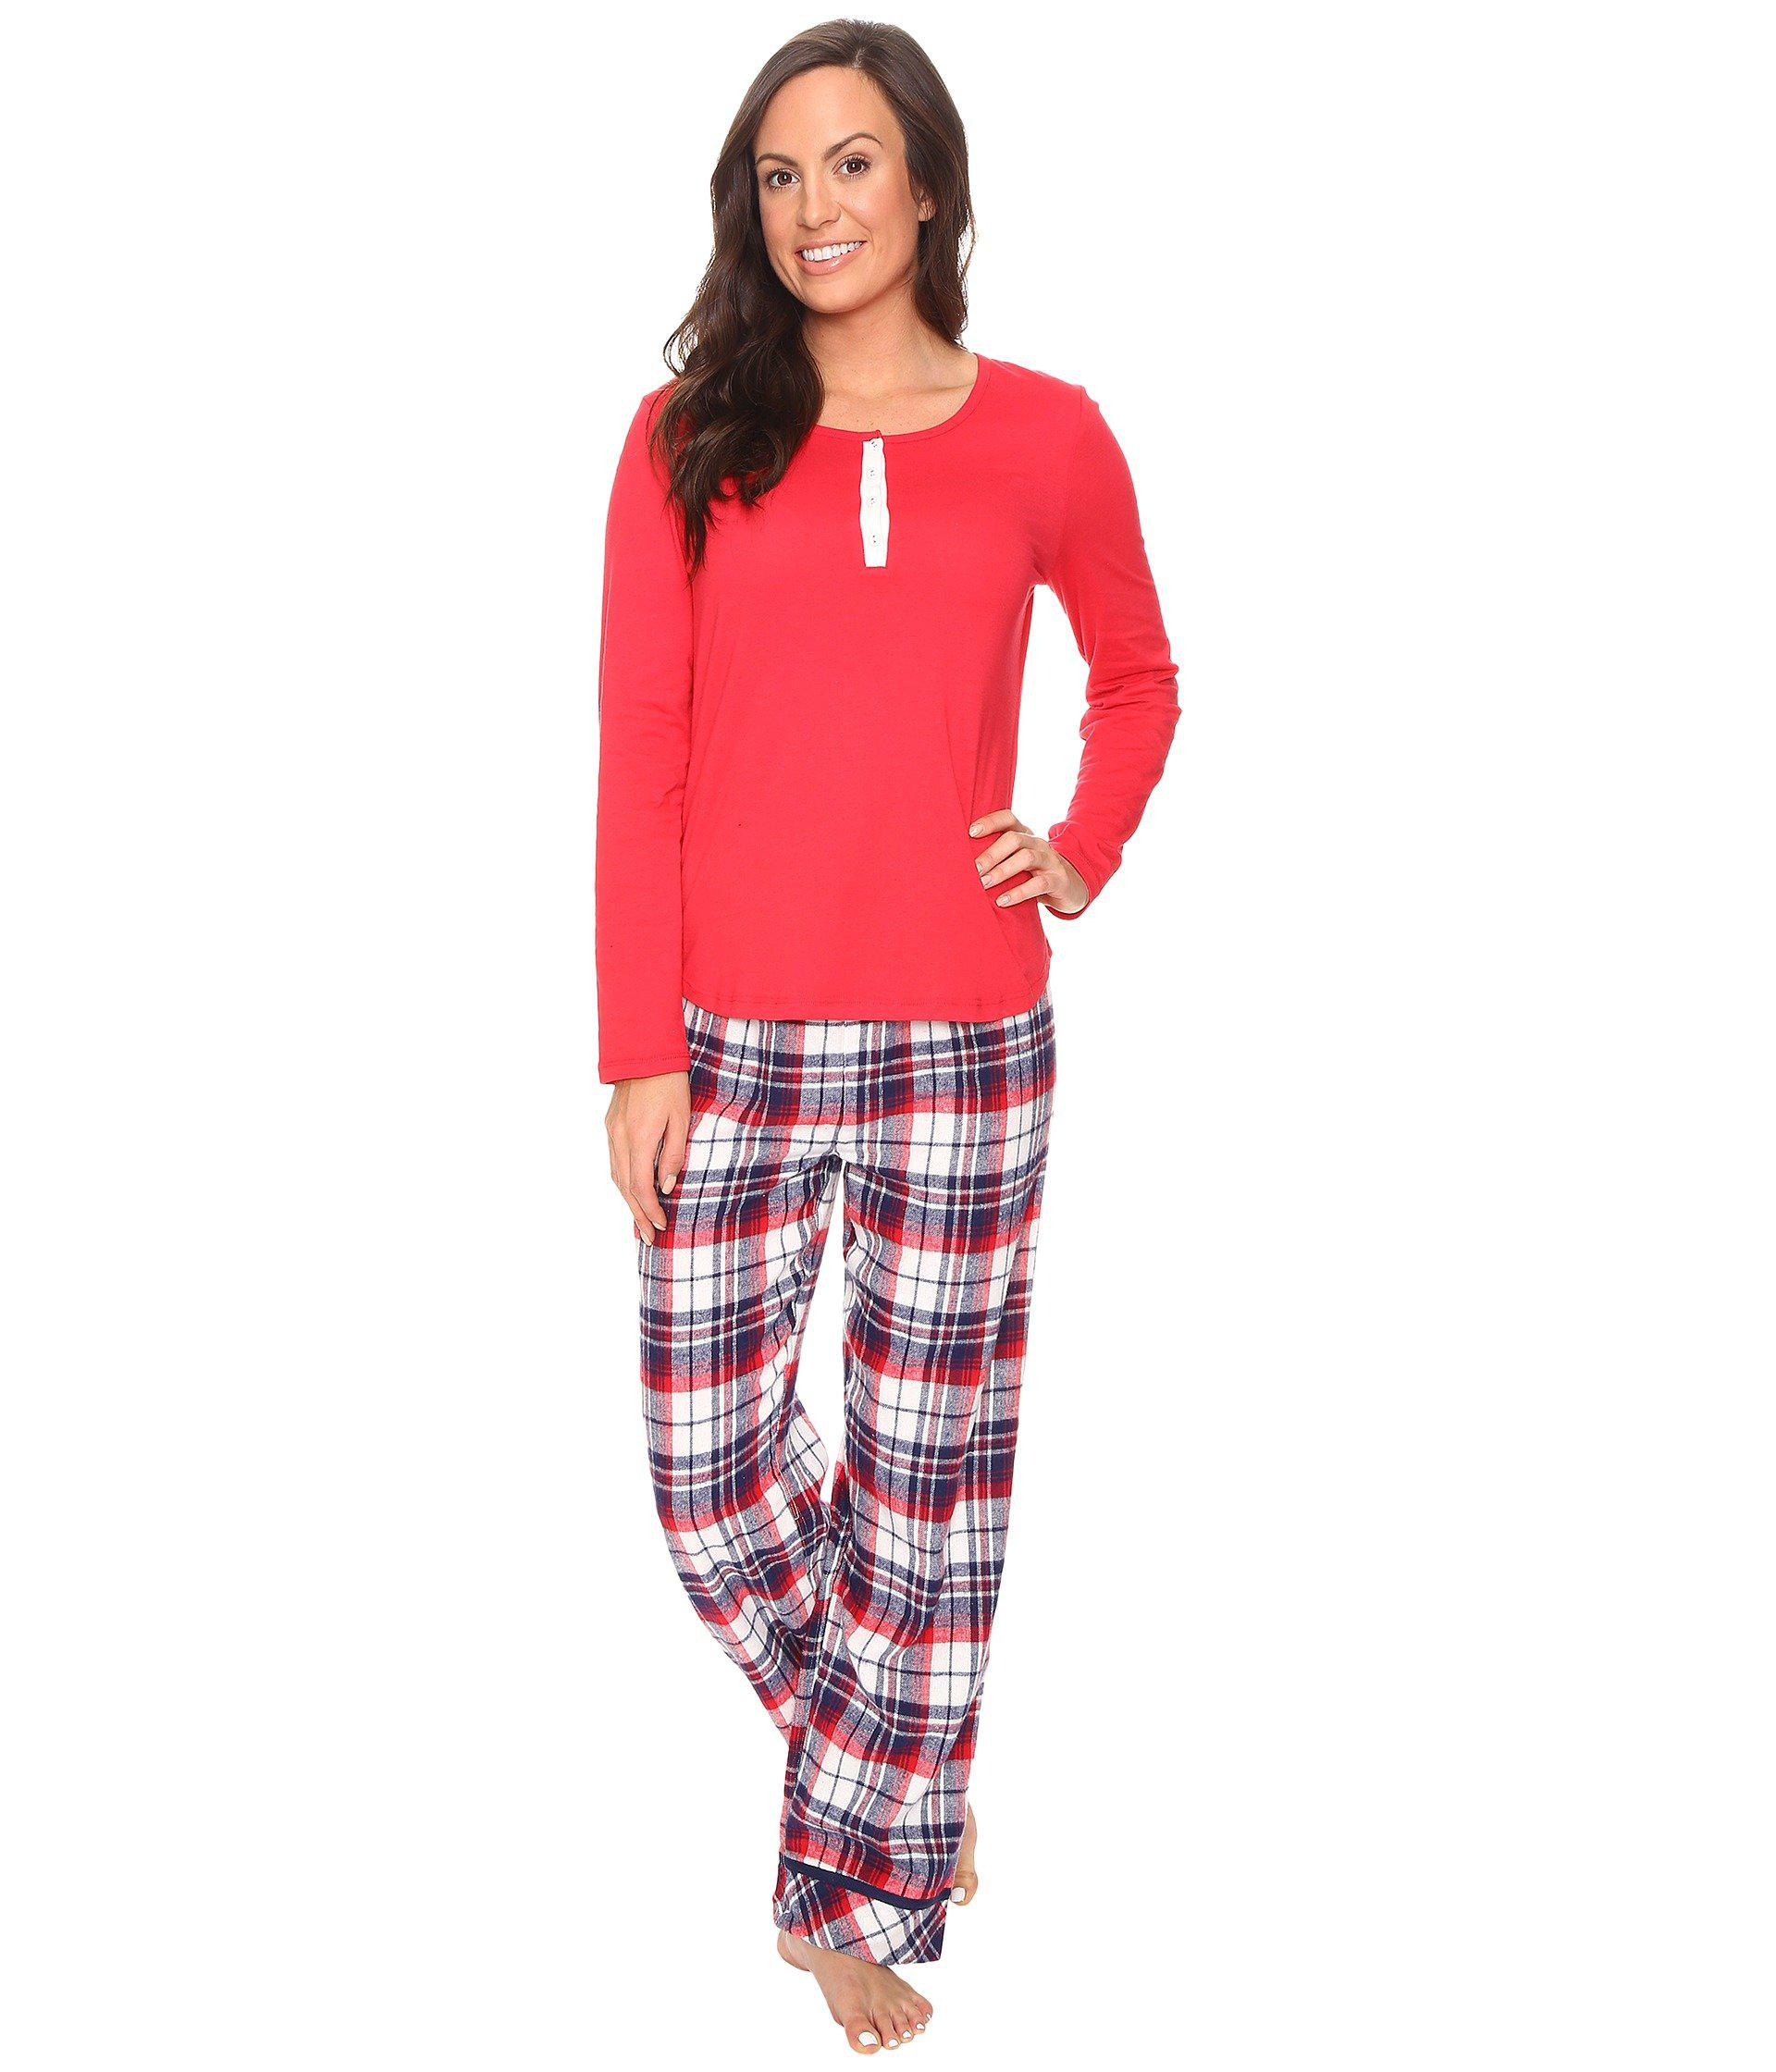 Lyst - Jockey Flannel Pant Pajama Set in Red 0df201a86